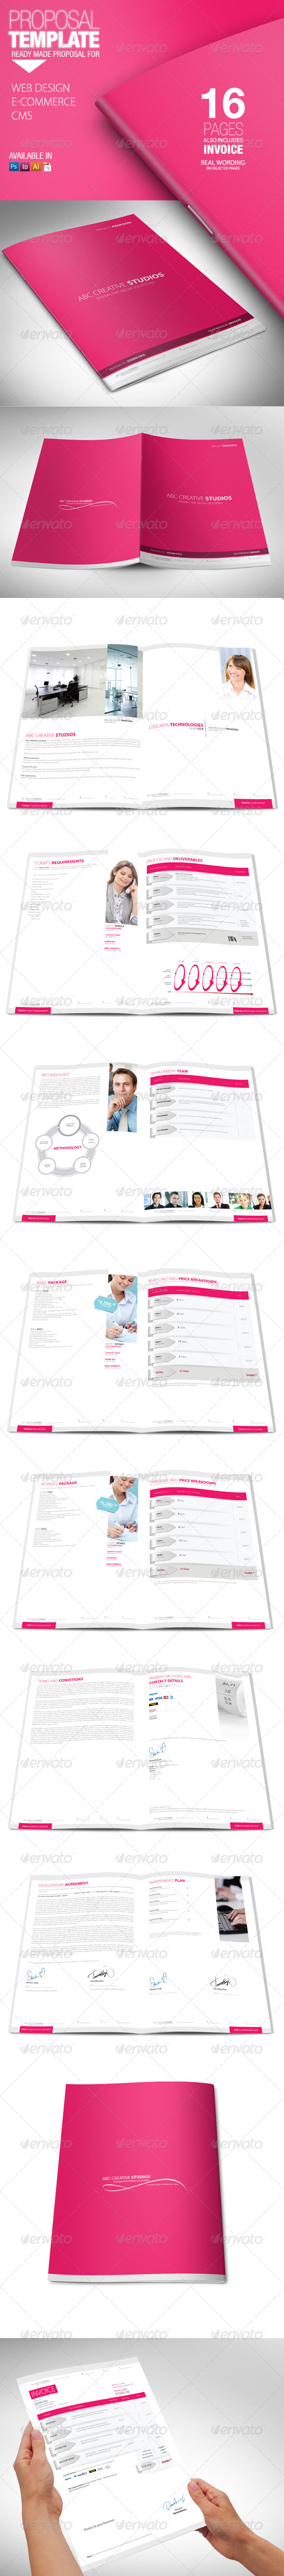 GraphicRiver Proposal Template 4104702